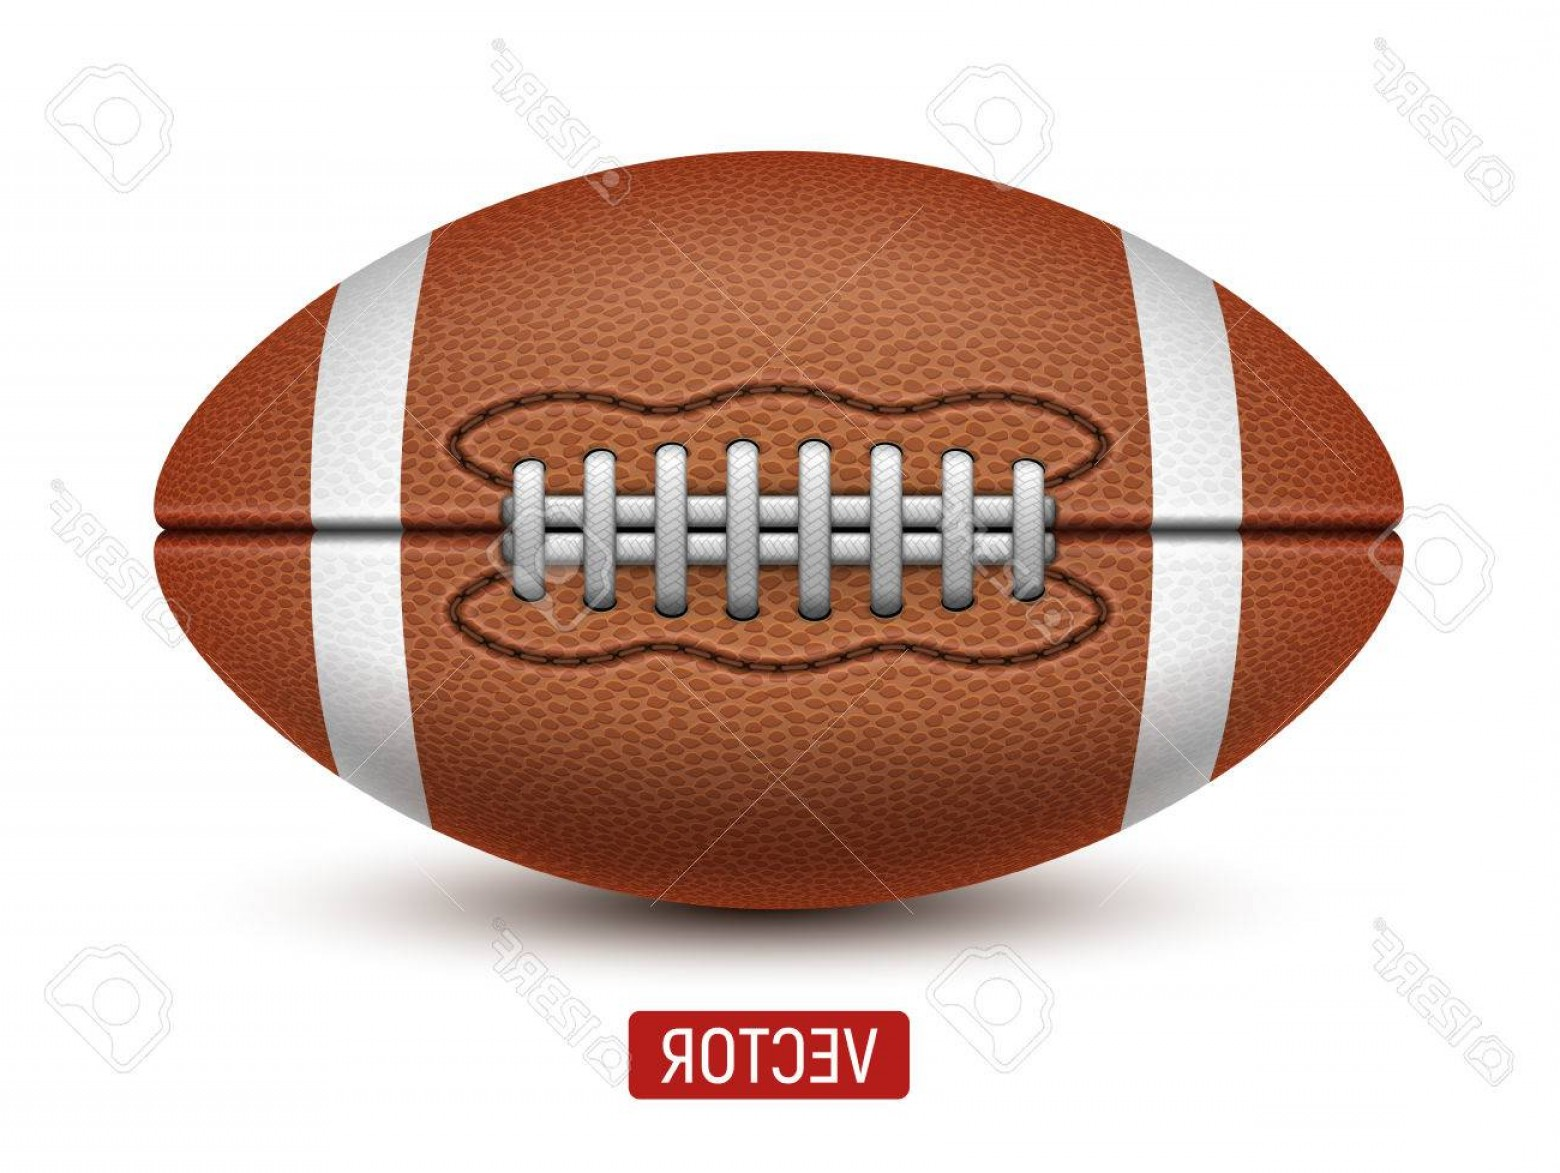 High Res Vector American Football: Photostock Vector Vector American Football Ball On A White Background Realistic Illustration Rugby Sport